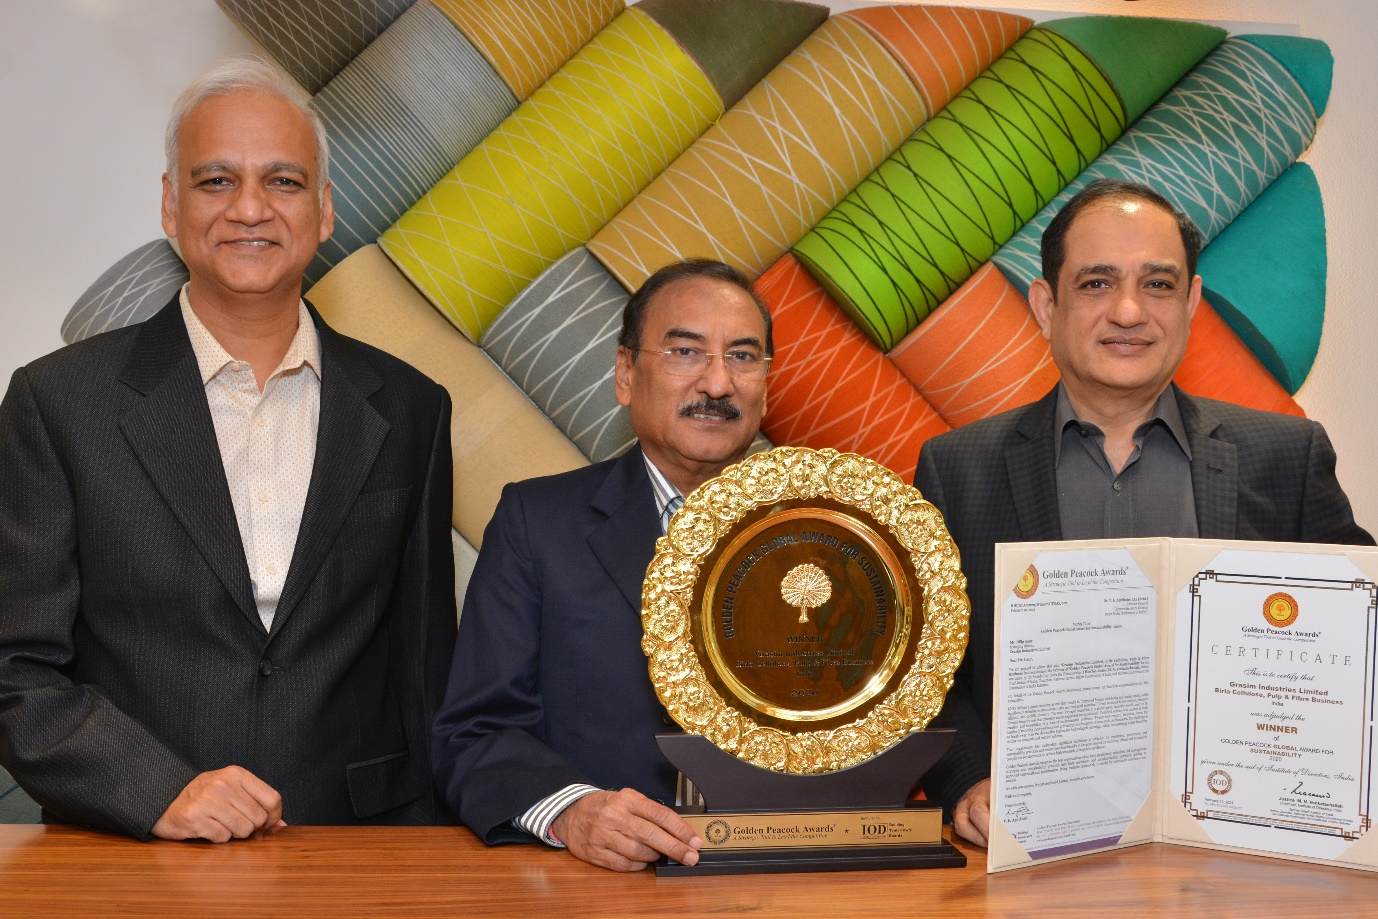 Grasim Industries Limited, Birla Cellulose, Pulp & Fibre Business Wins Golden Peacock Global Award for Sustainability 2020